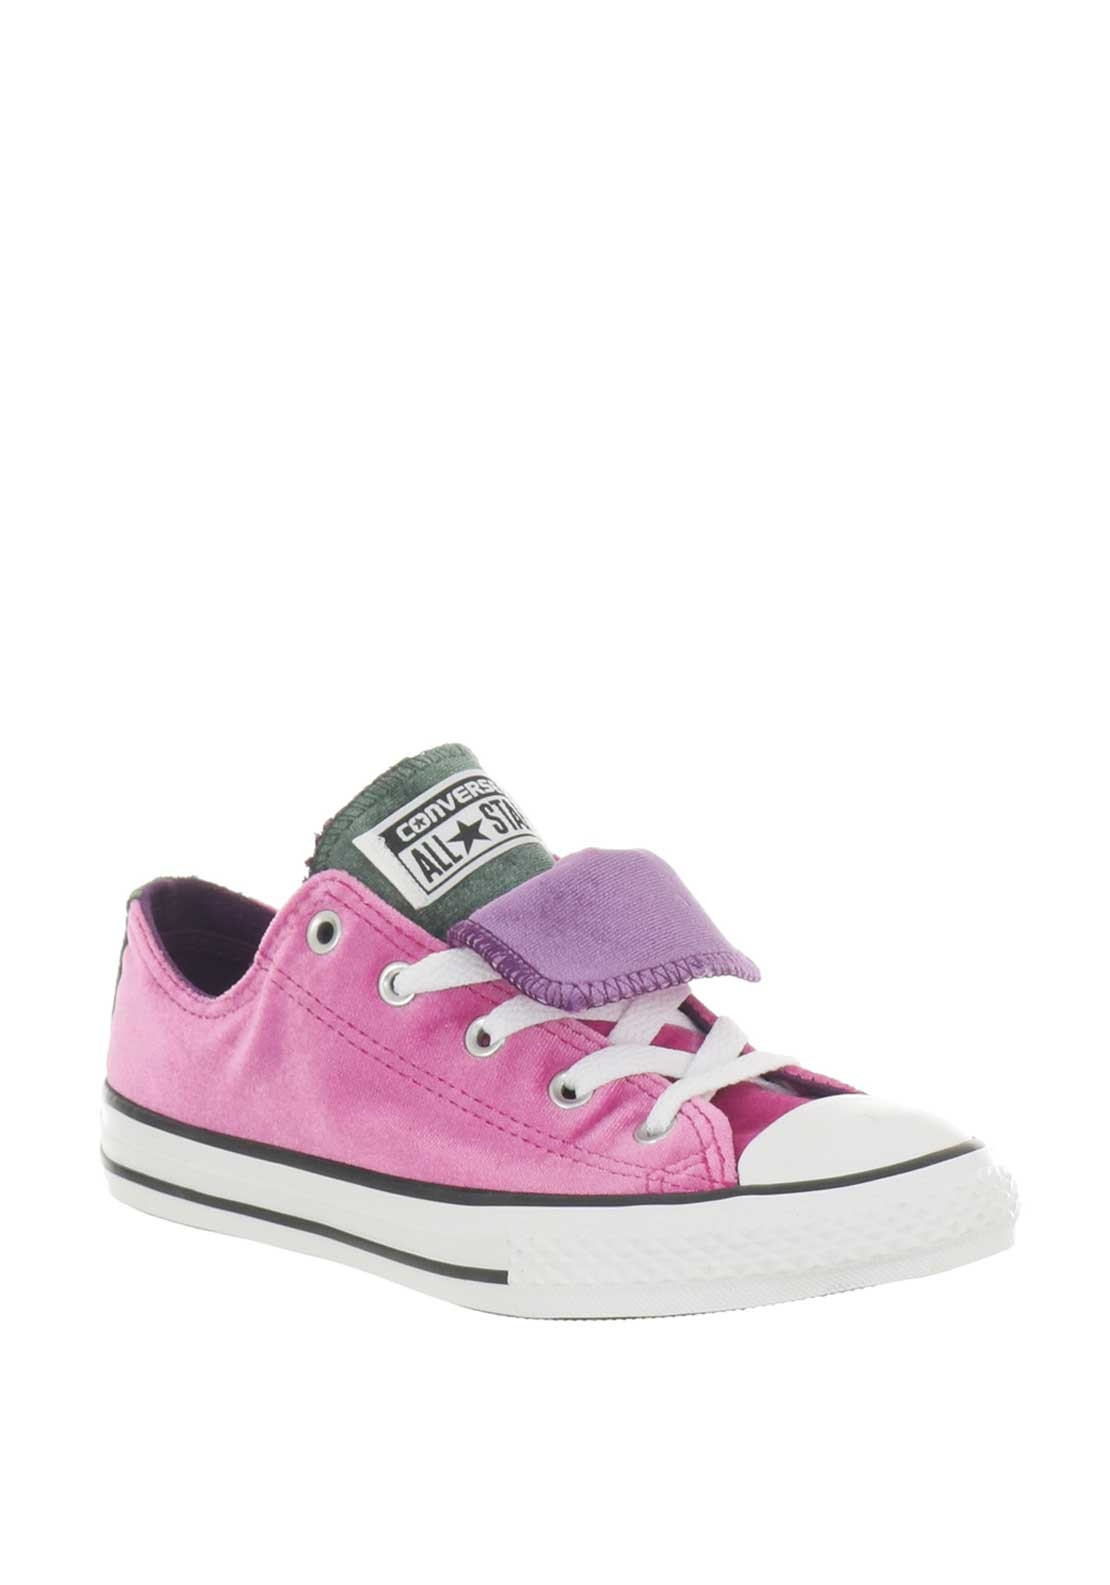 353b254609ab Converse Girls Velvet Low OX Trainers